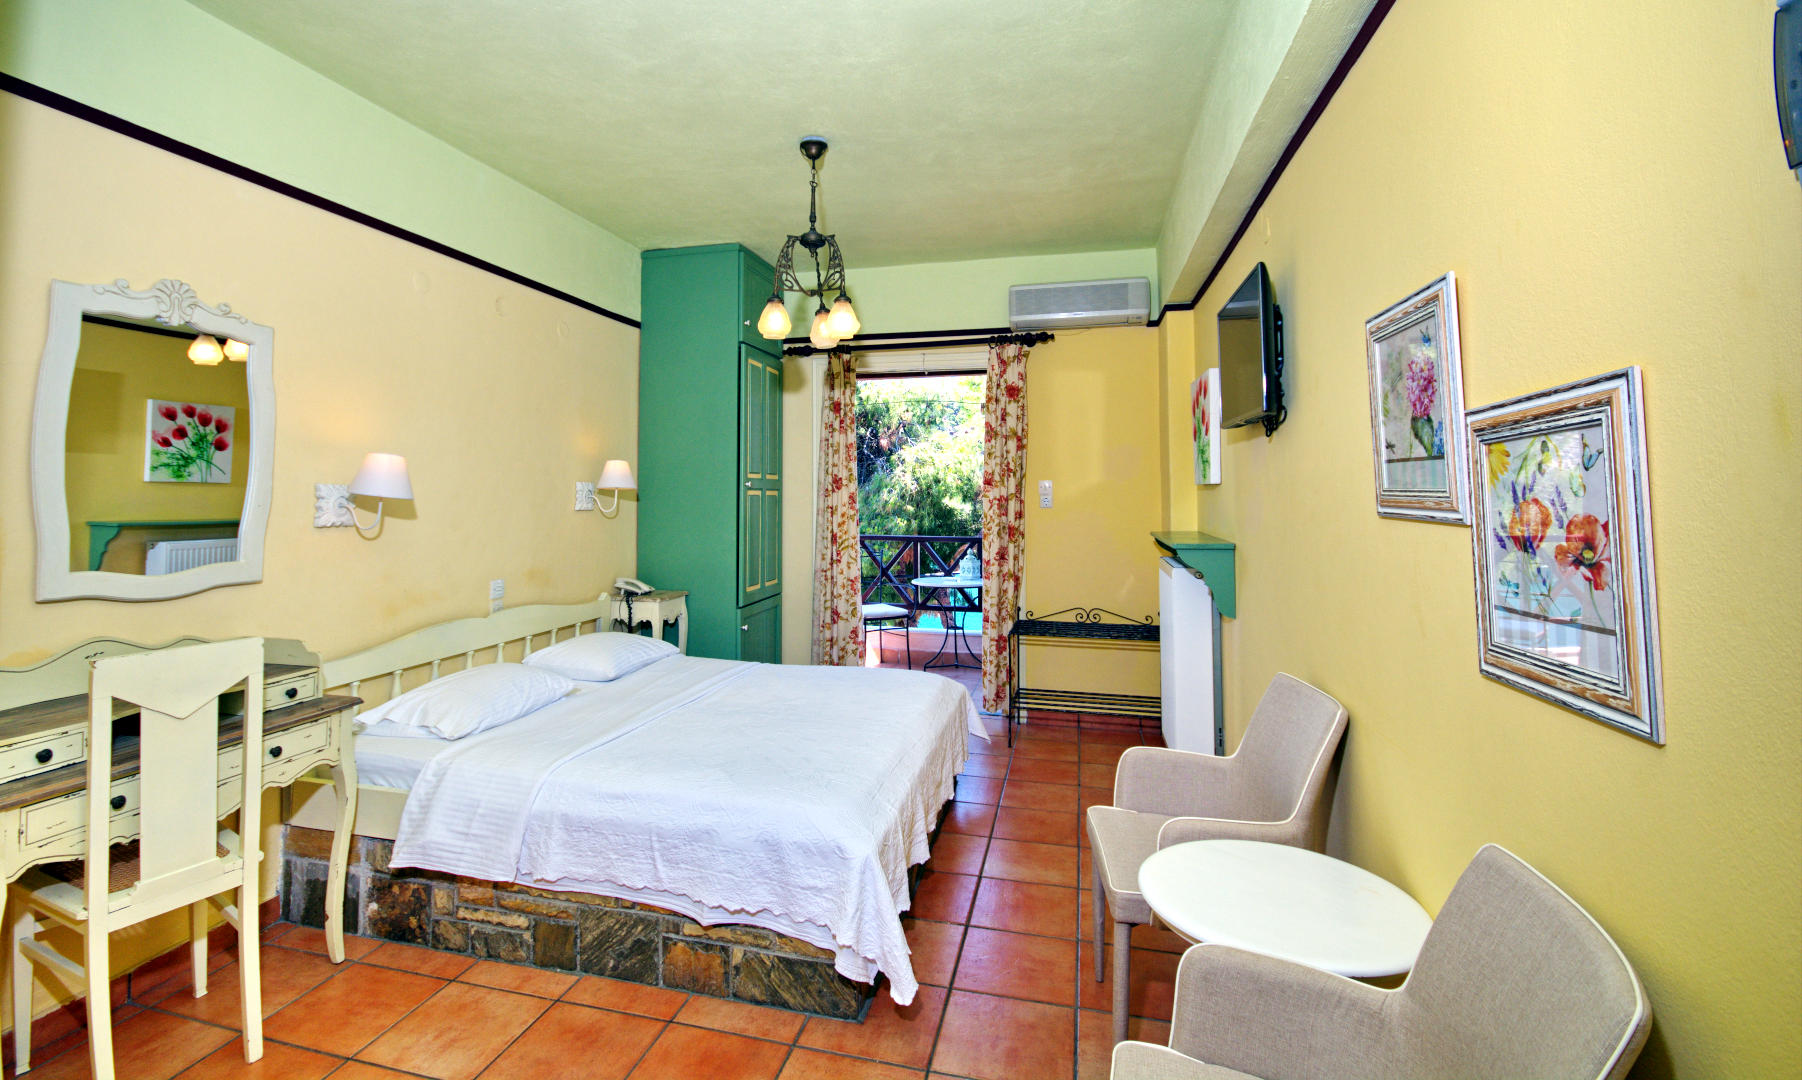 Liadromia Hotel - Rooms For 2